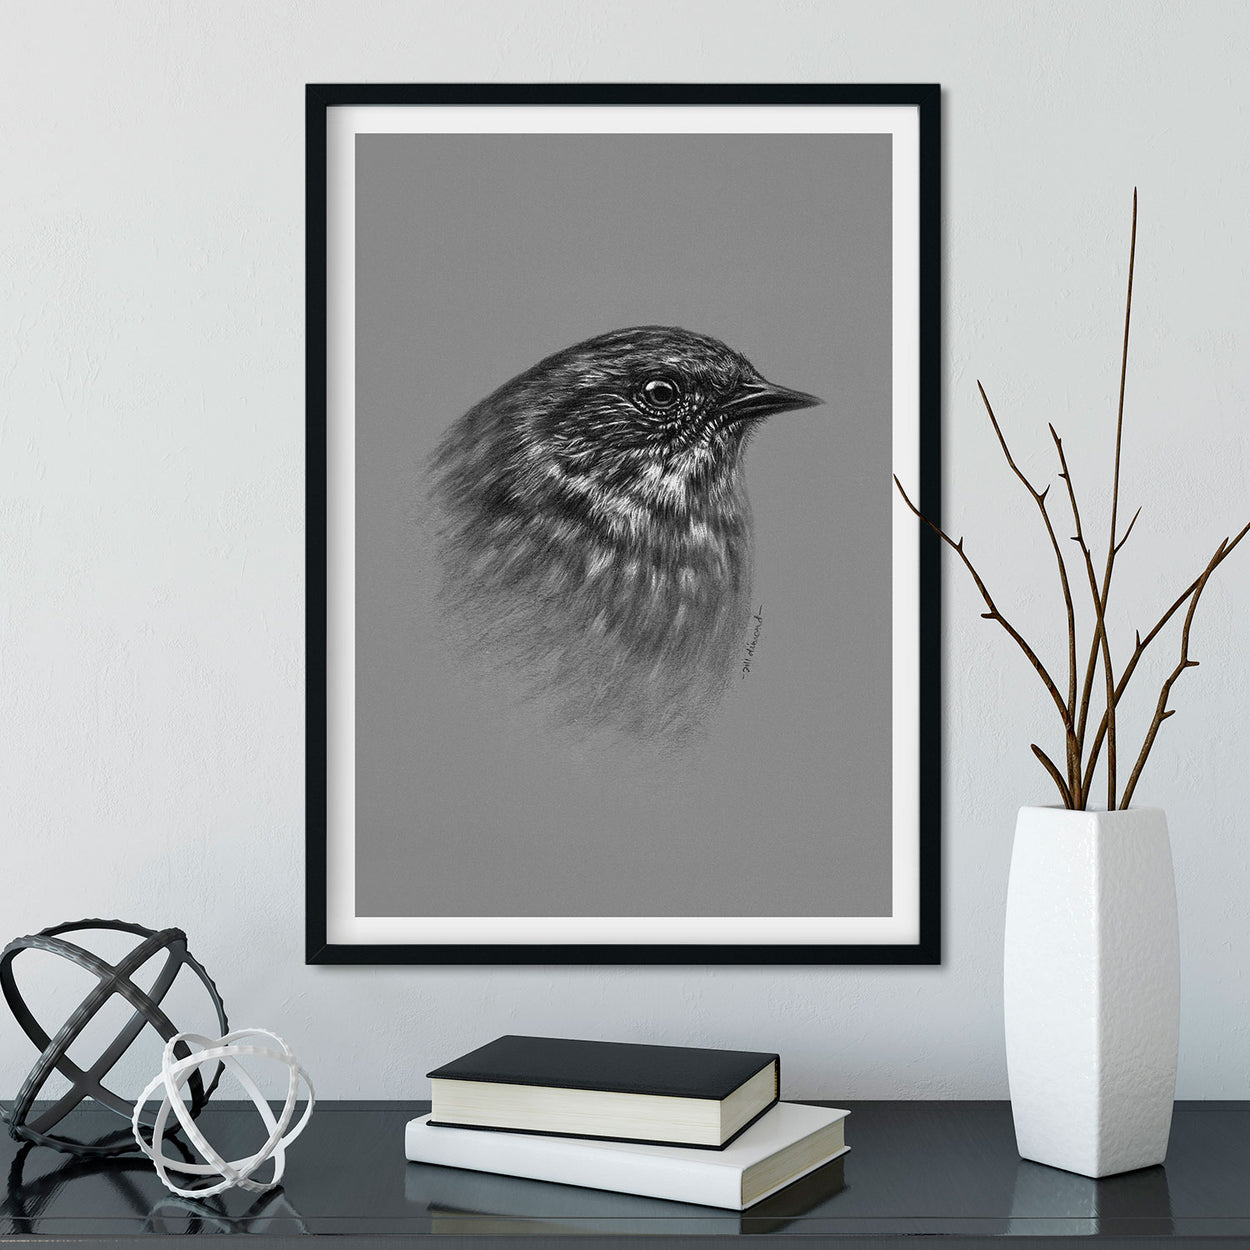 Dunnock Wall Art in Frame Garden Birds - The Thriving Wild - Jill Dimond